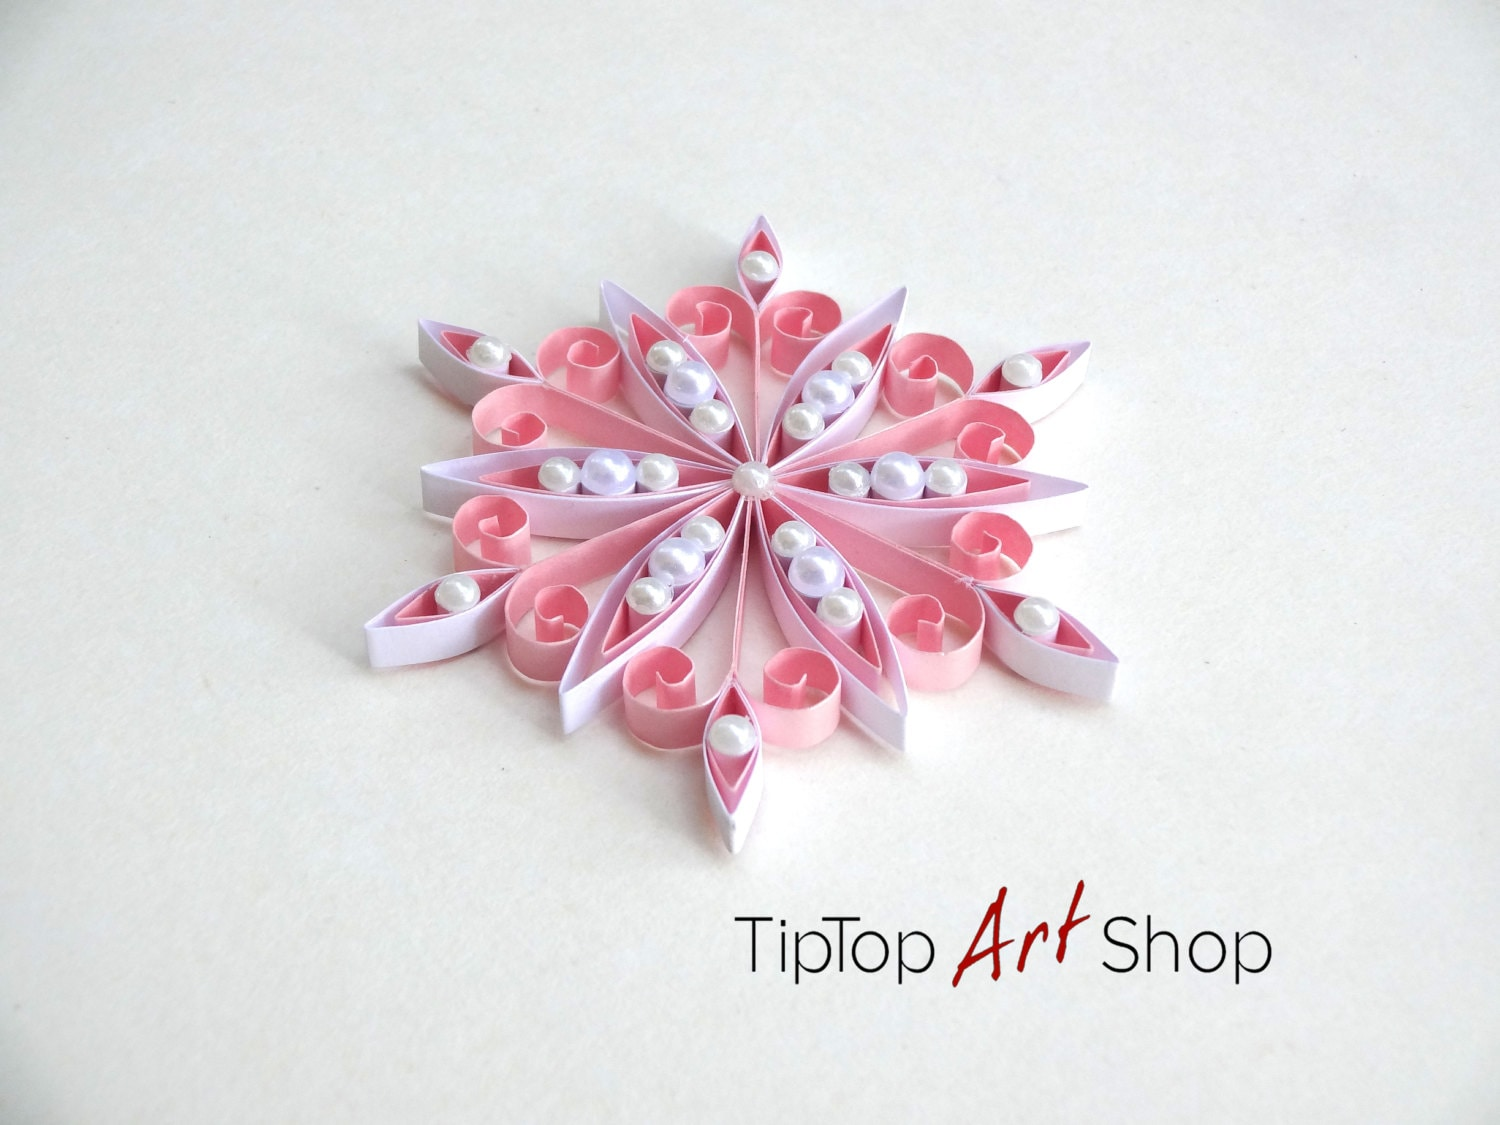 Quilled Snowflake Ornament for Seasonal Home Decor in Pink and